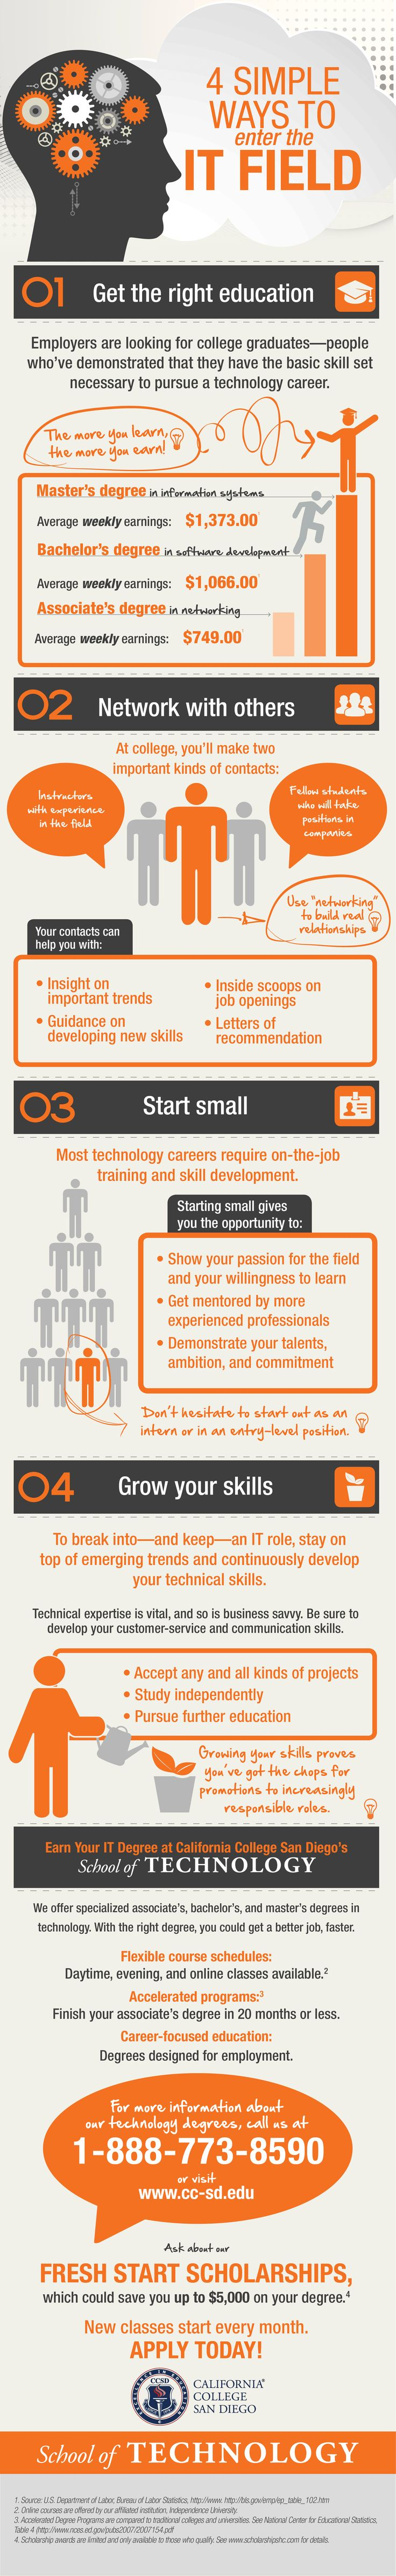 Want to enter the information technology field? Try these 4 tips in our new infographic!